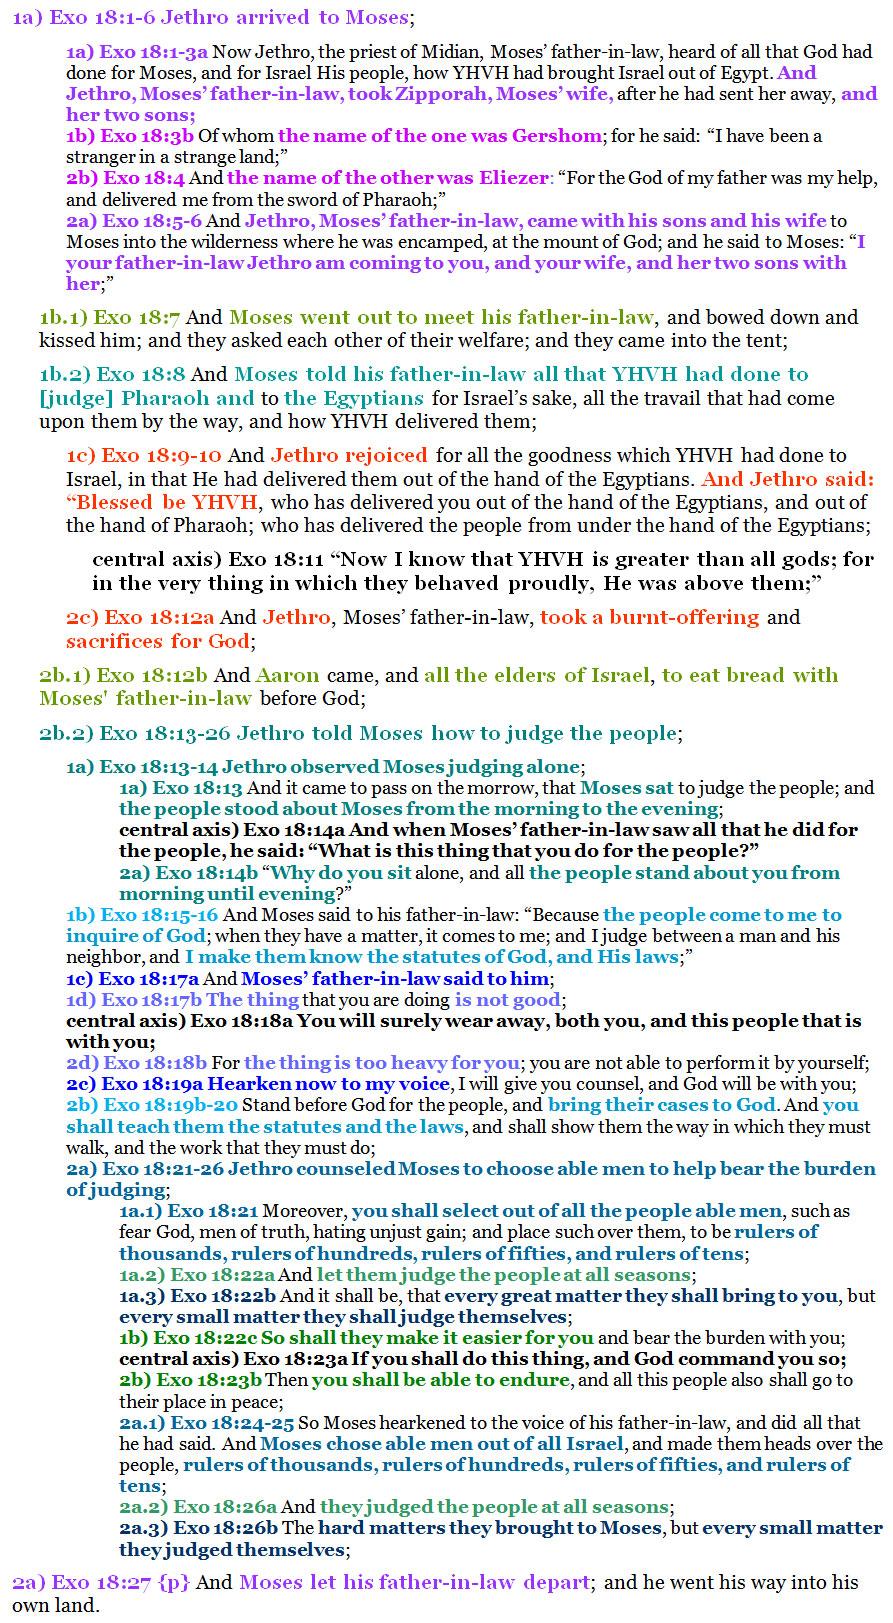 Exo 18:1-27 chiasm | christine's bible study at alittleperspective.com